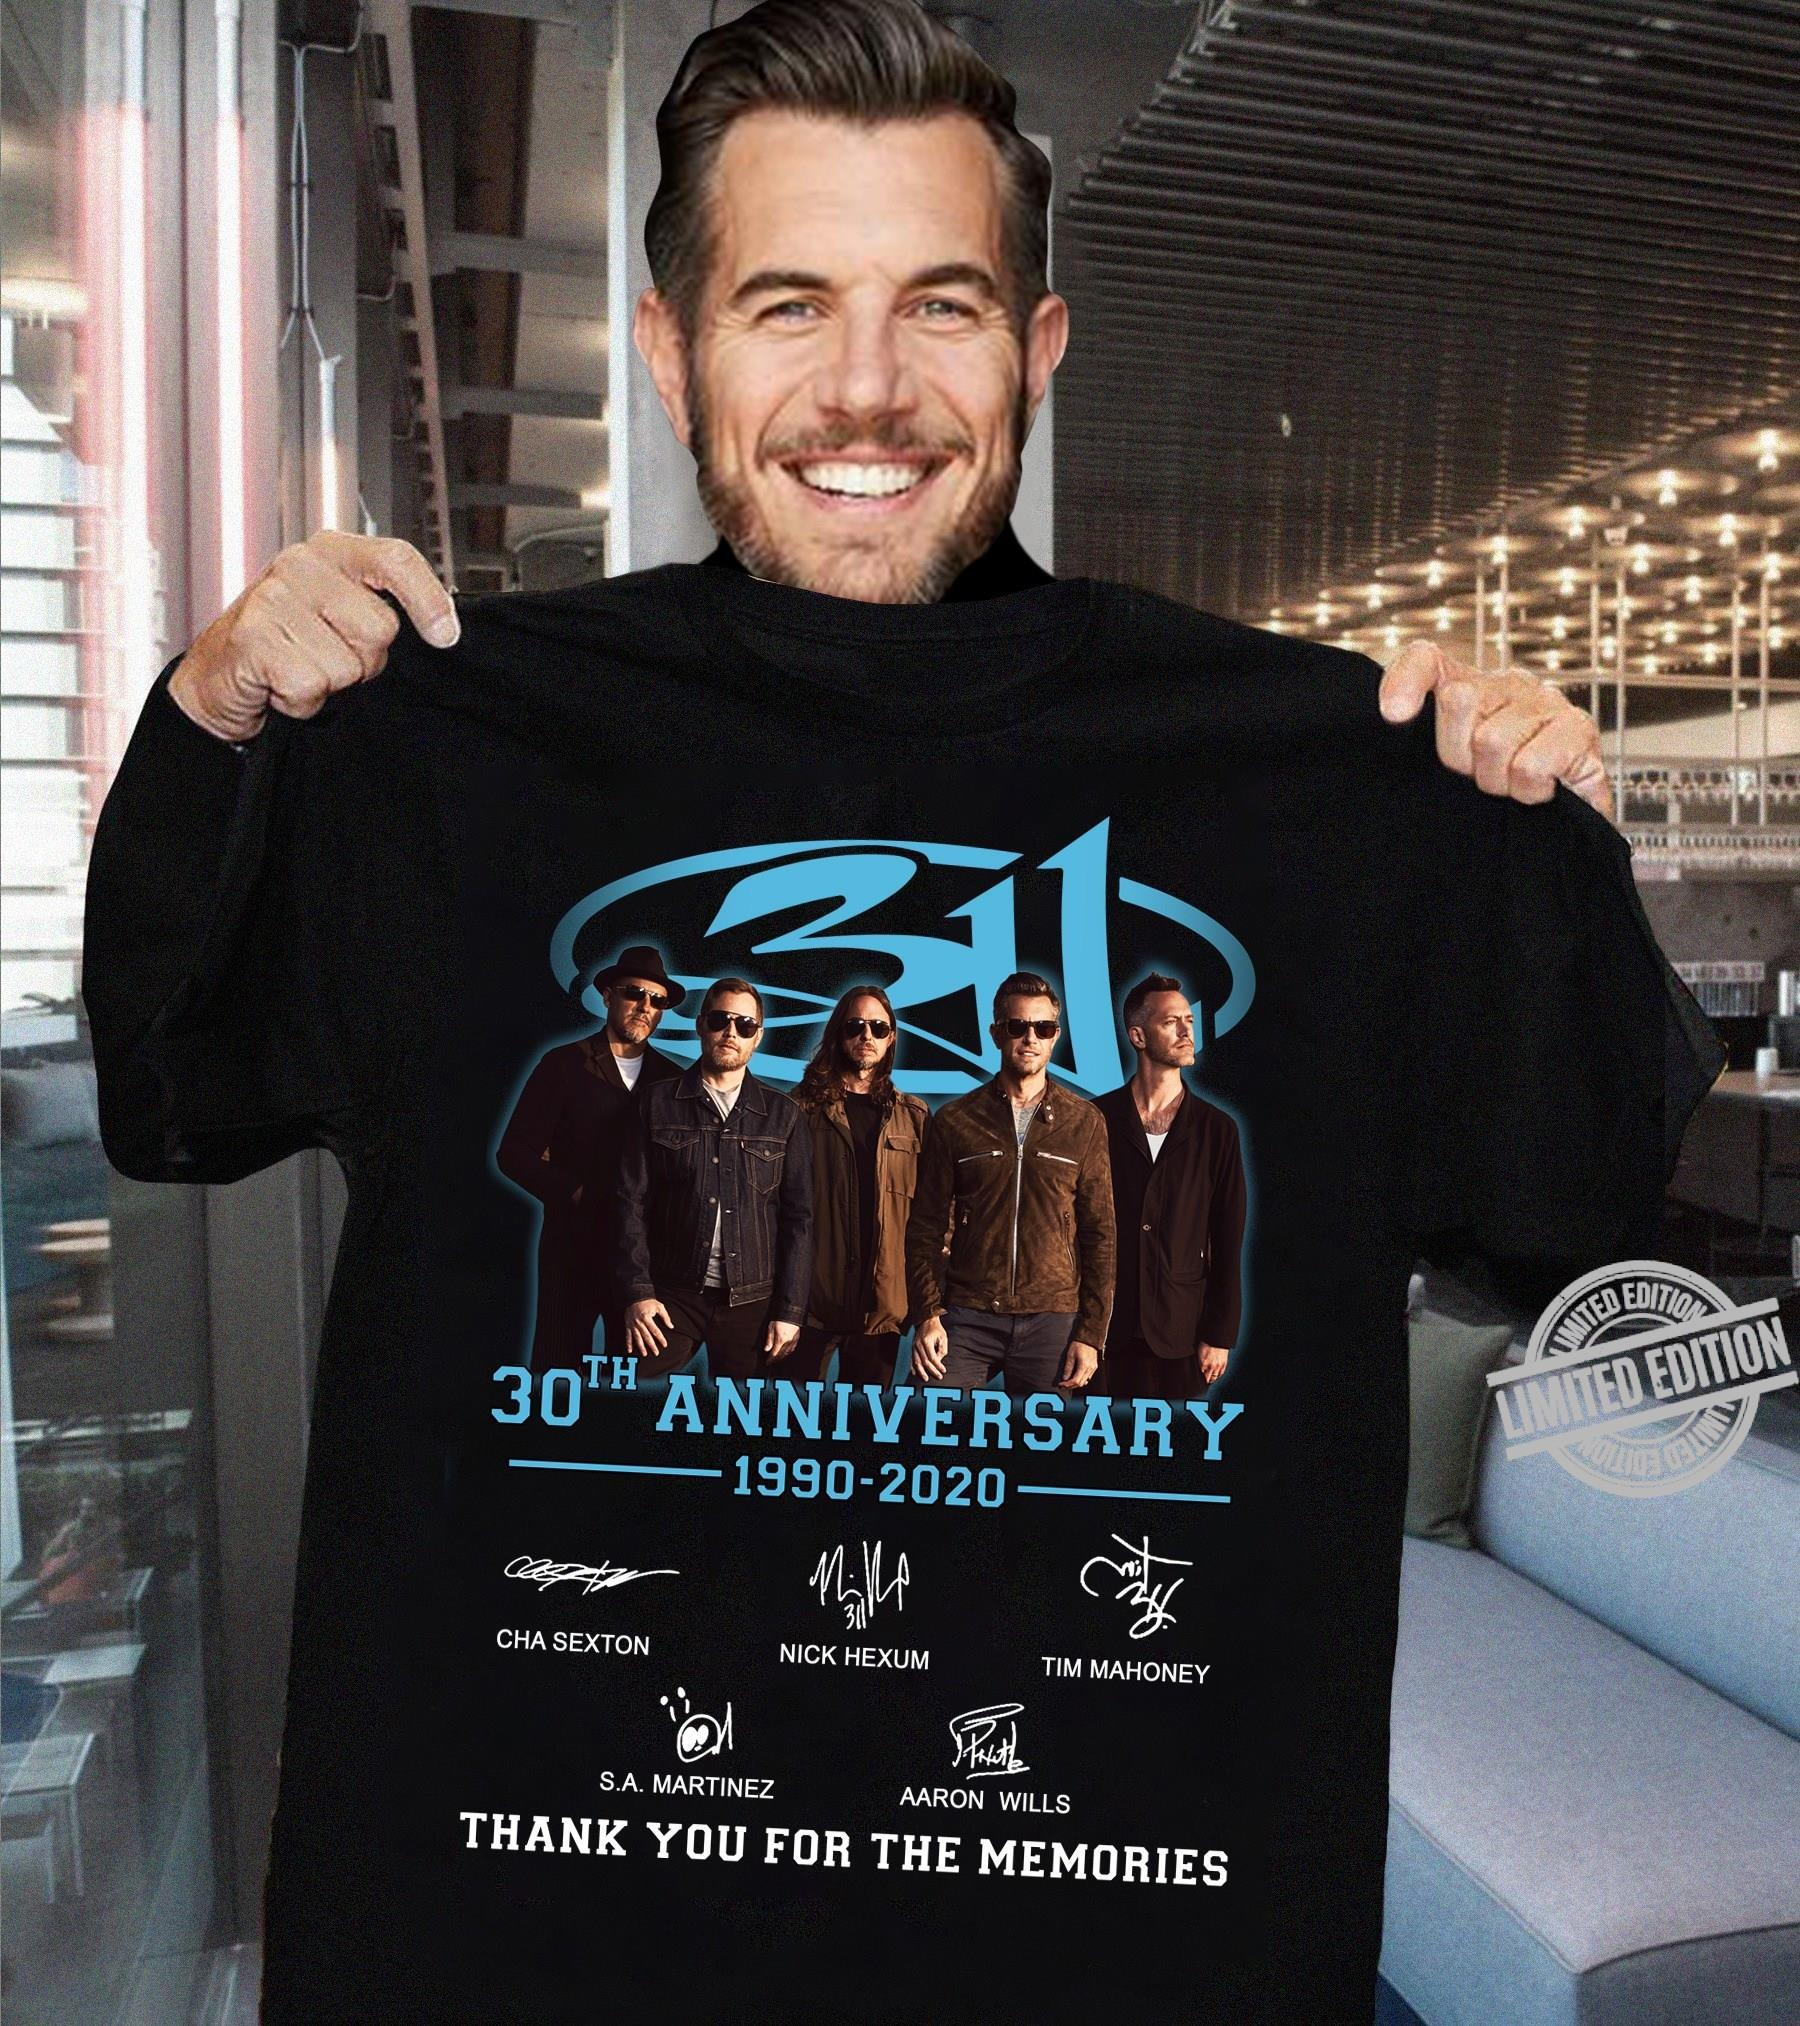 30th Anniversary 1990-2020 Thank You For The Memories Shirt